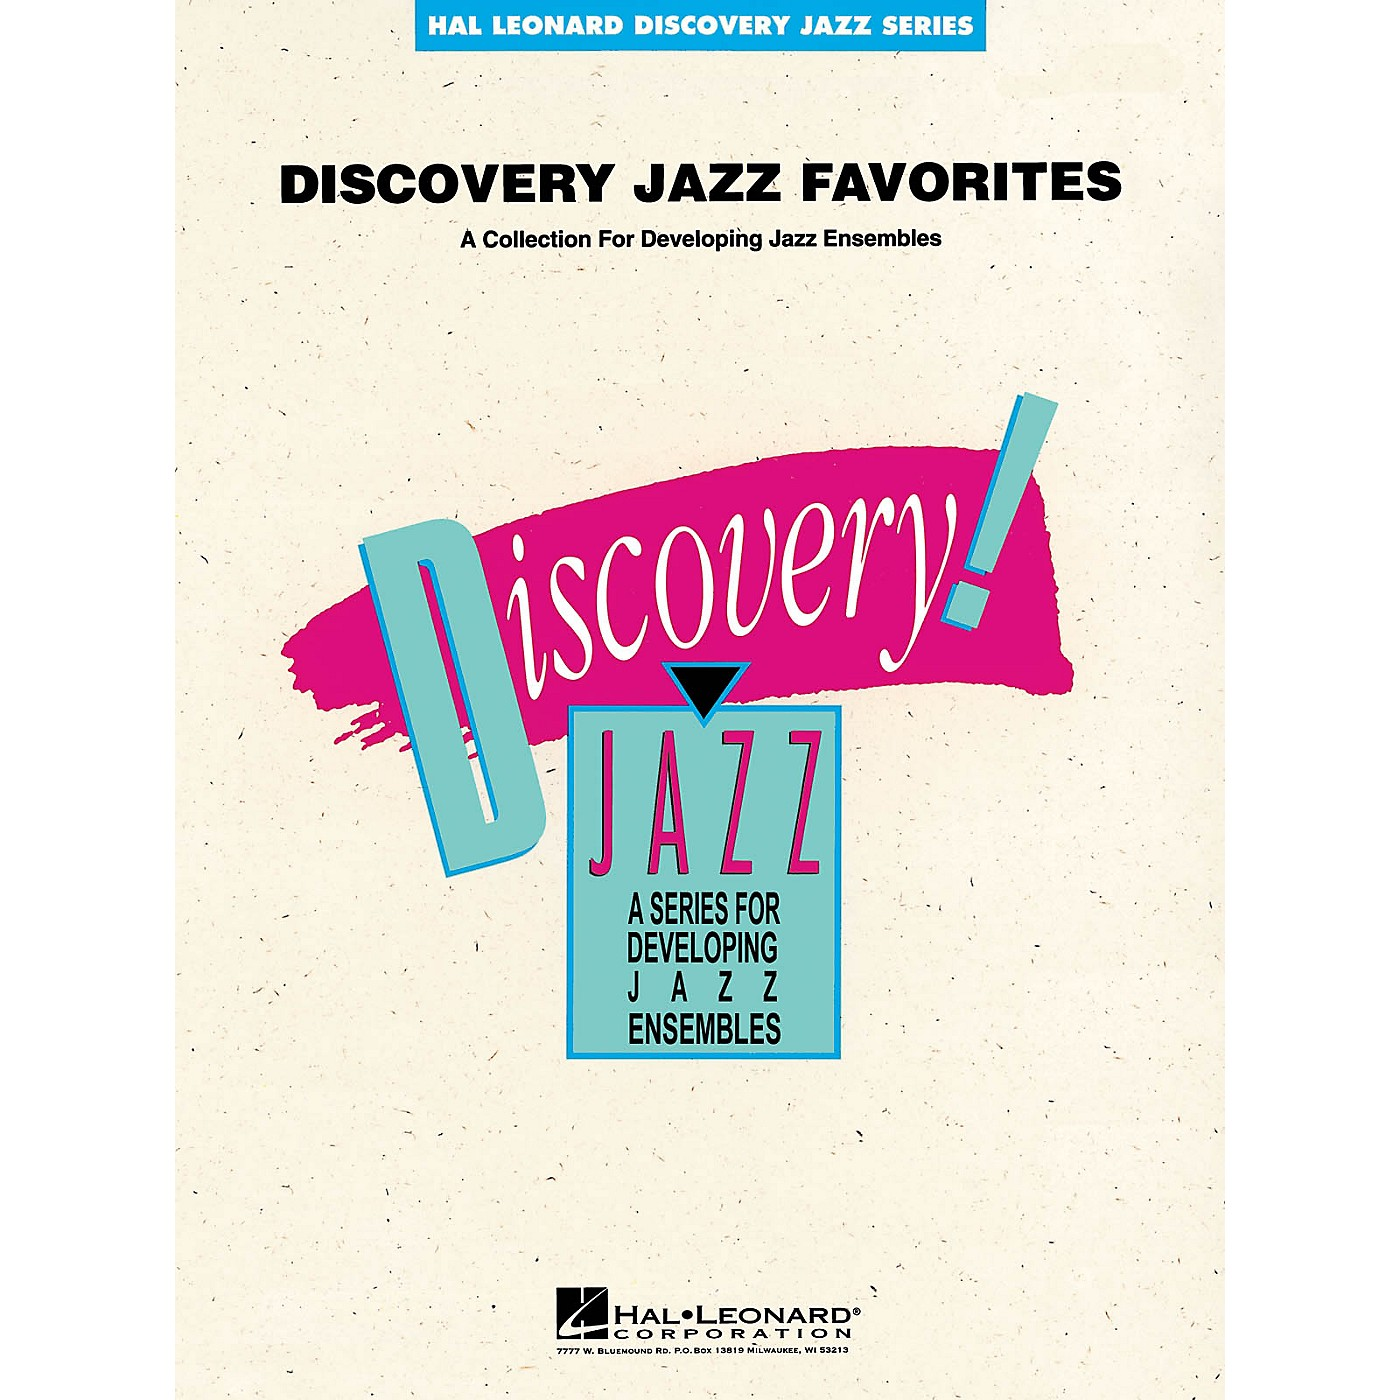 Hal Leonard Discovery Jazz Favorites - Tenor Sax 1 Jazz Band Level 1-2 Composed by Various thumbnail